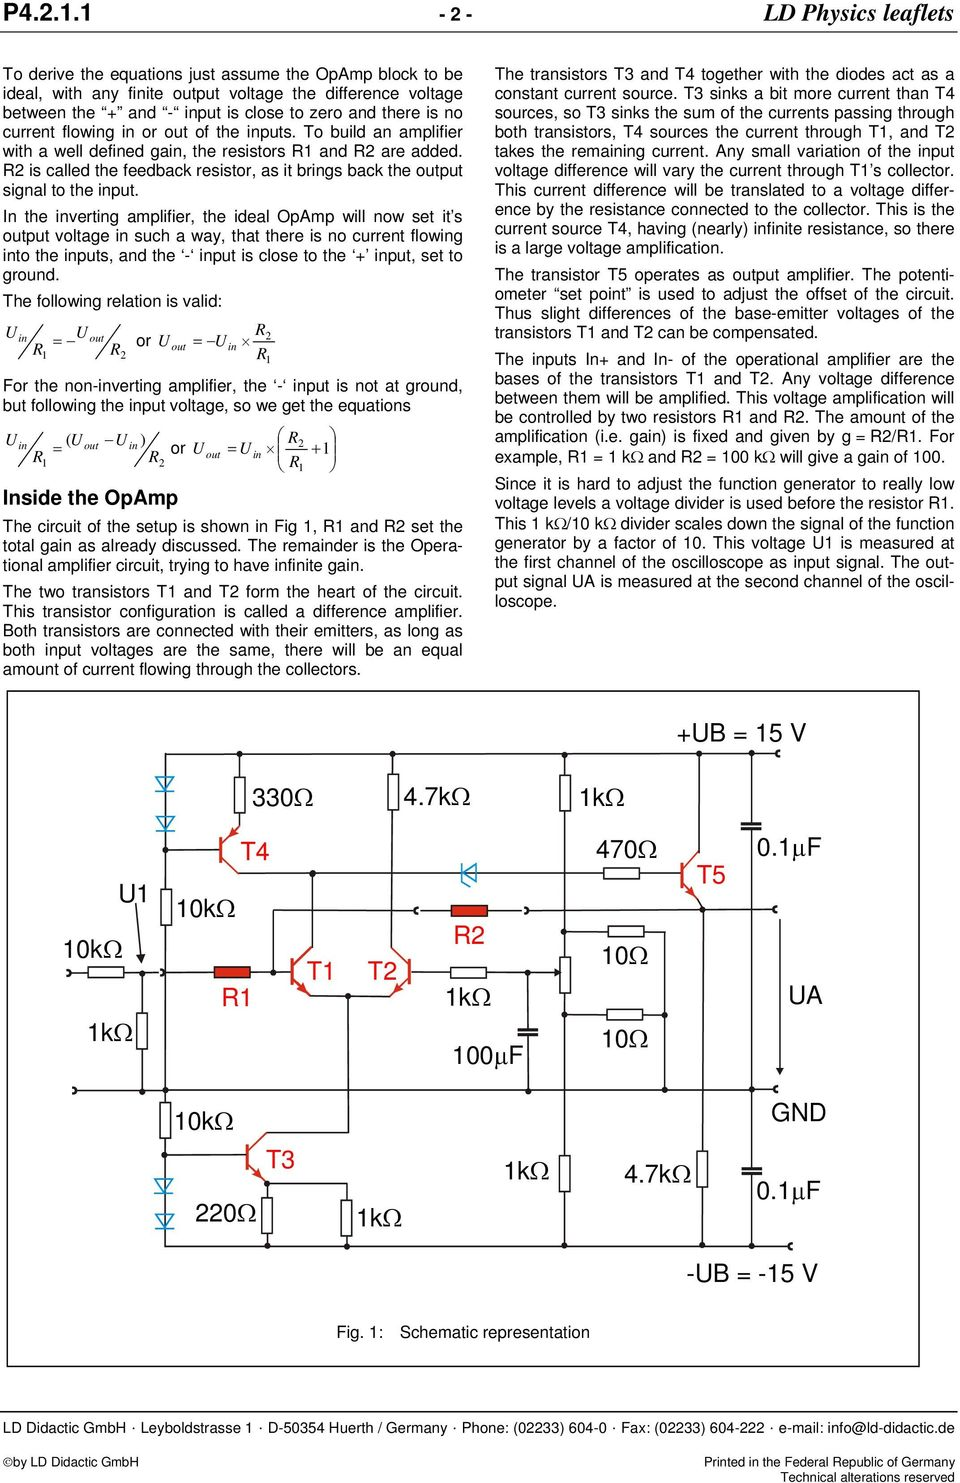 Electronics Discrete Assembly Of An Operational Amplifier As A Http Startingelectronicscom Beginners Circuits Opamposcillator Is No Current Flowing In Or Out The Inputs To Build With